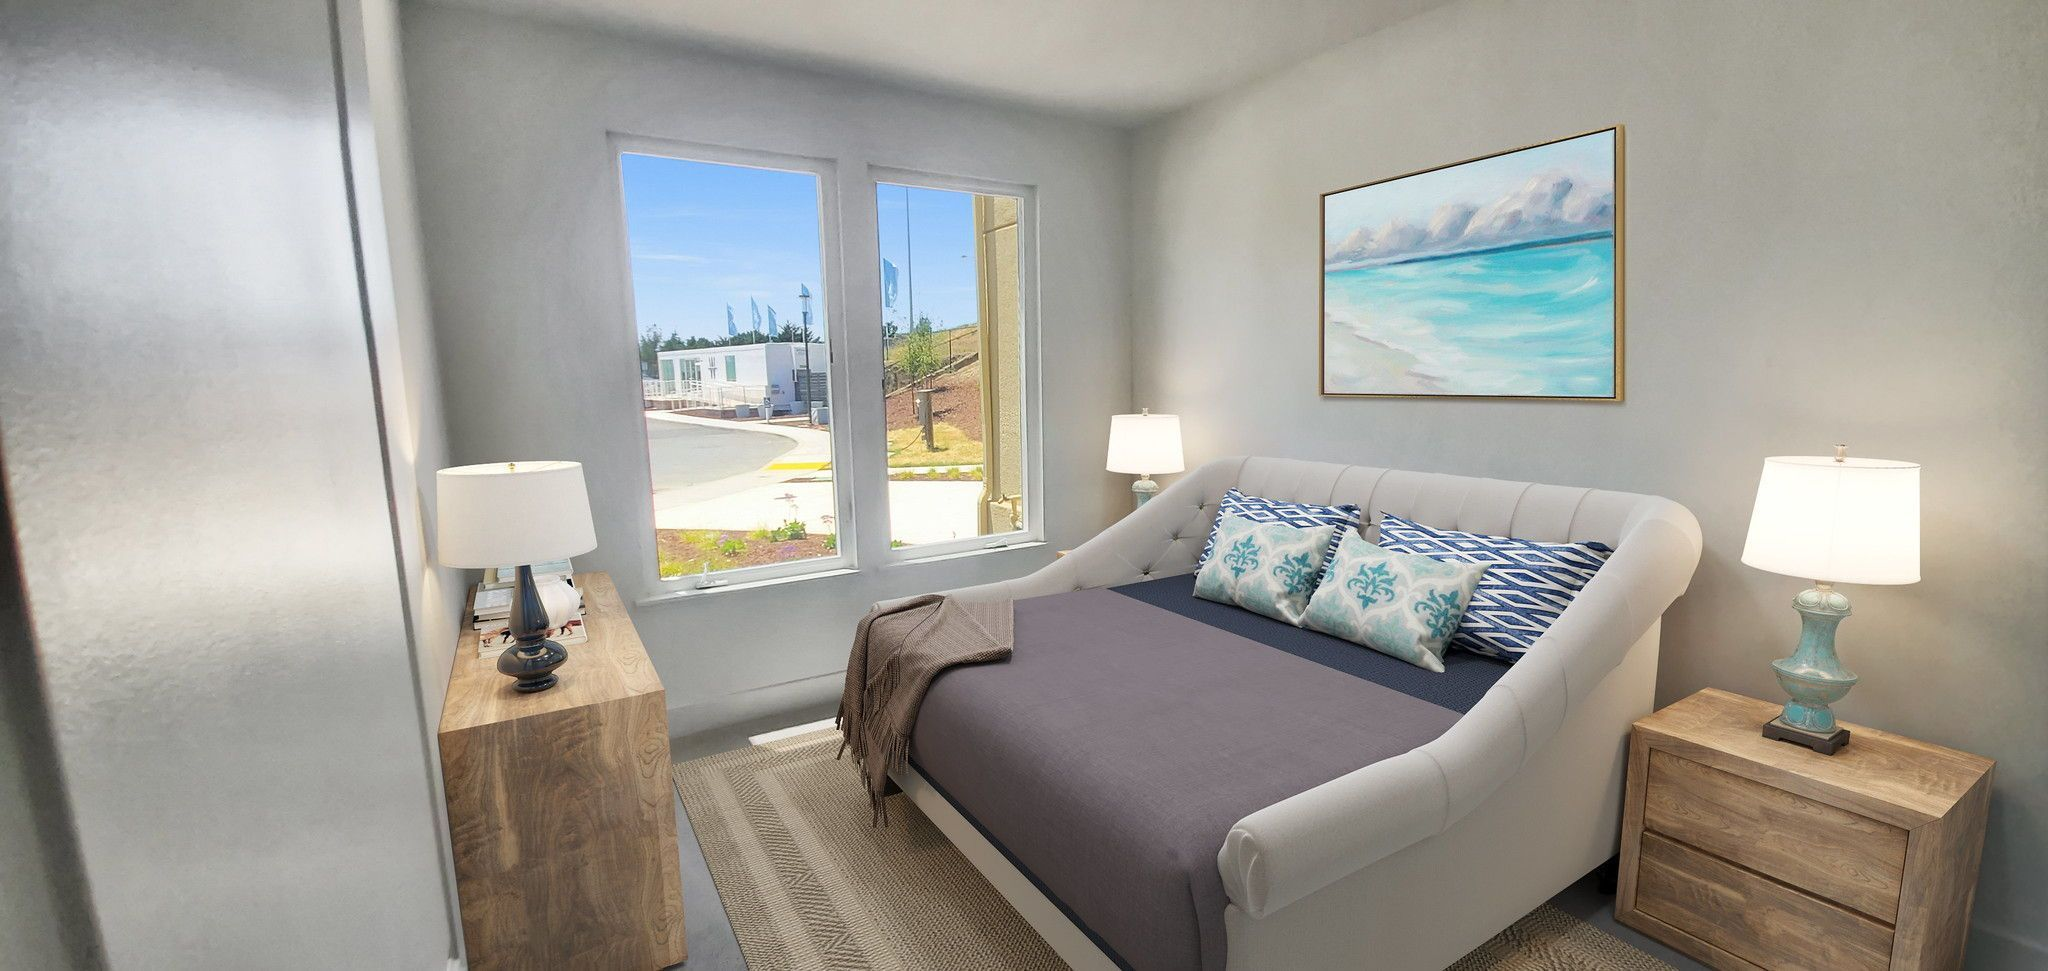 Waterline in Point Richmond, CA by Shea Homes | Residence 4 Bedroom  #SheaHomes #SheaHomesNorCal #SheaHomeowners #SheaNorCal #LiveTheSheaDifference #NorCalHomes #NorCalRealEstate #BayAreaRealEstate #BayAreaNewHomes #HomeDesignInspiration #HomeInspiration #Waterline #PointRichmond Sales: Shea Homes Marketing Company (CalDRE #01378646); Construction: Shea Homes Limited Partnership (CSLB #855368). Equal Housing Opportunity.